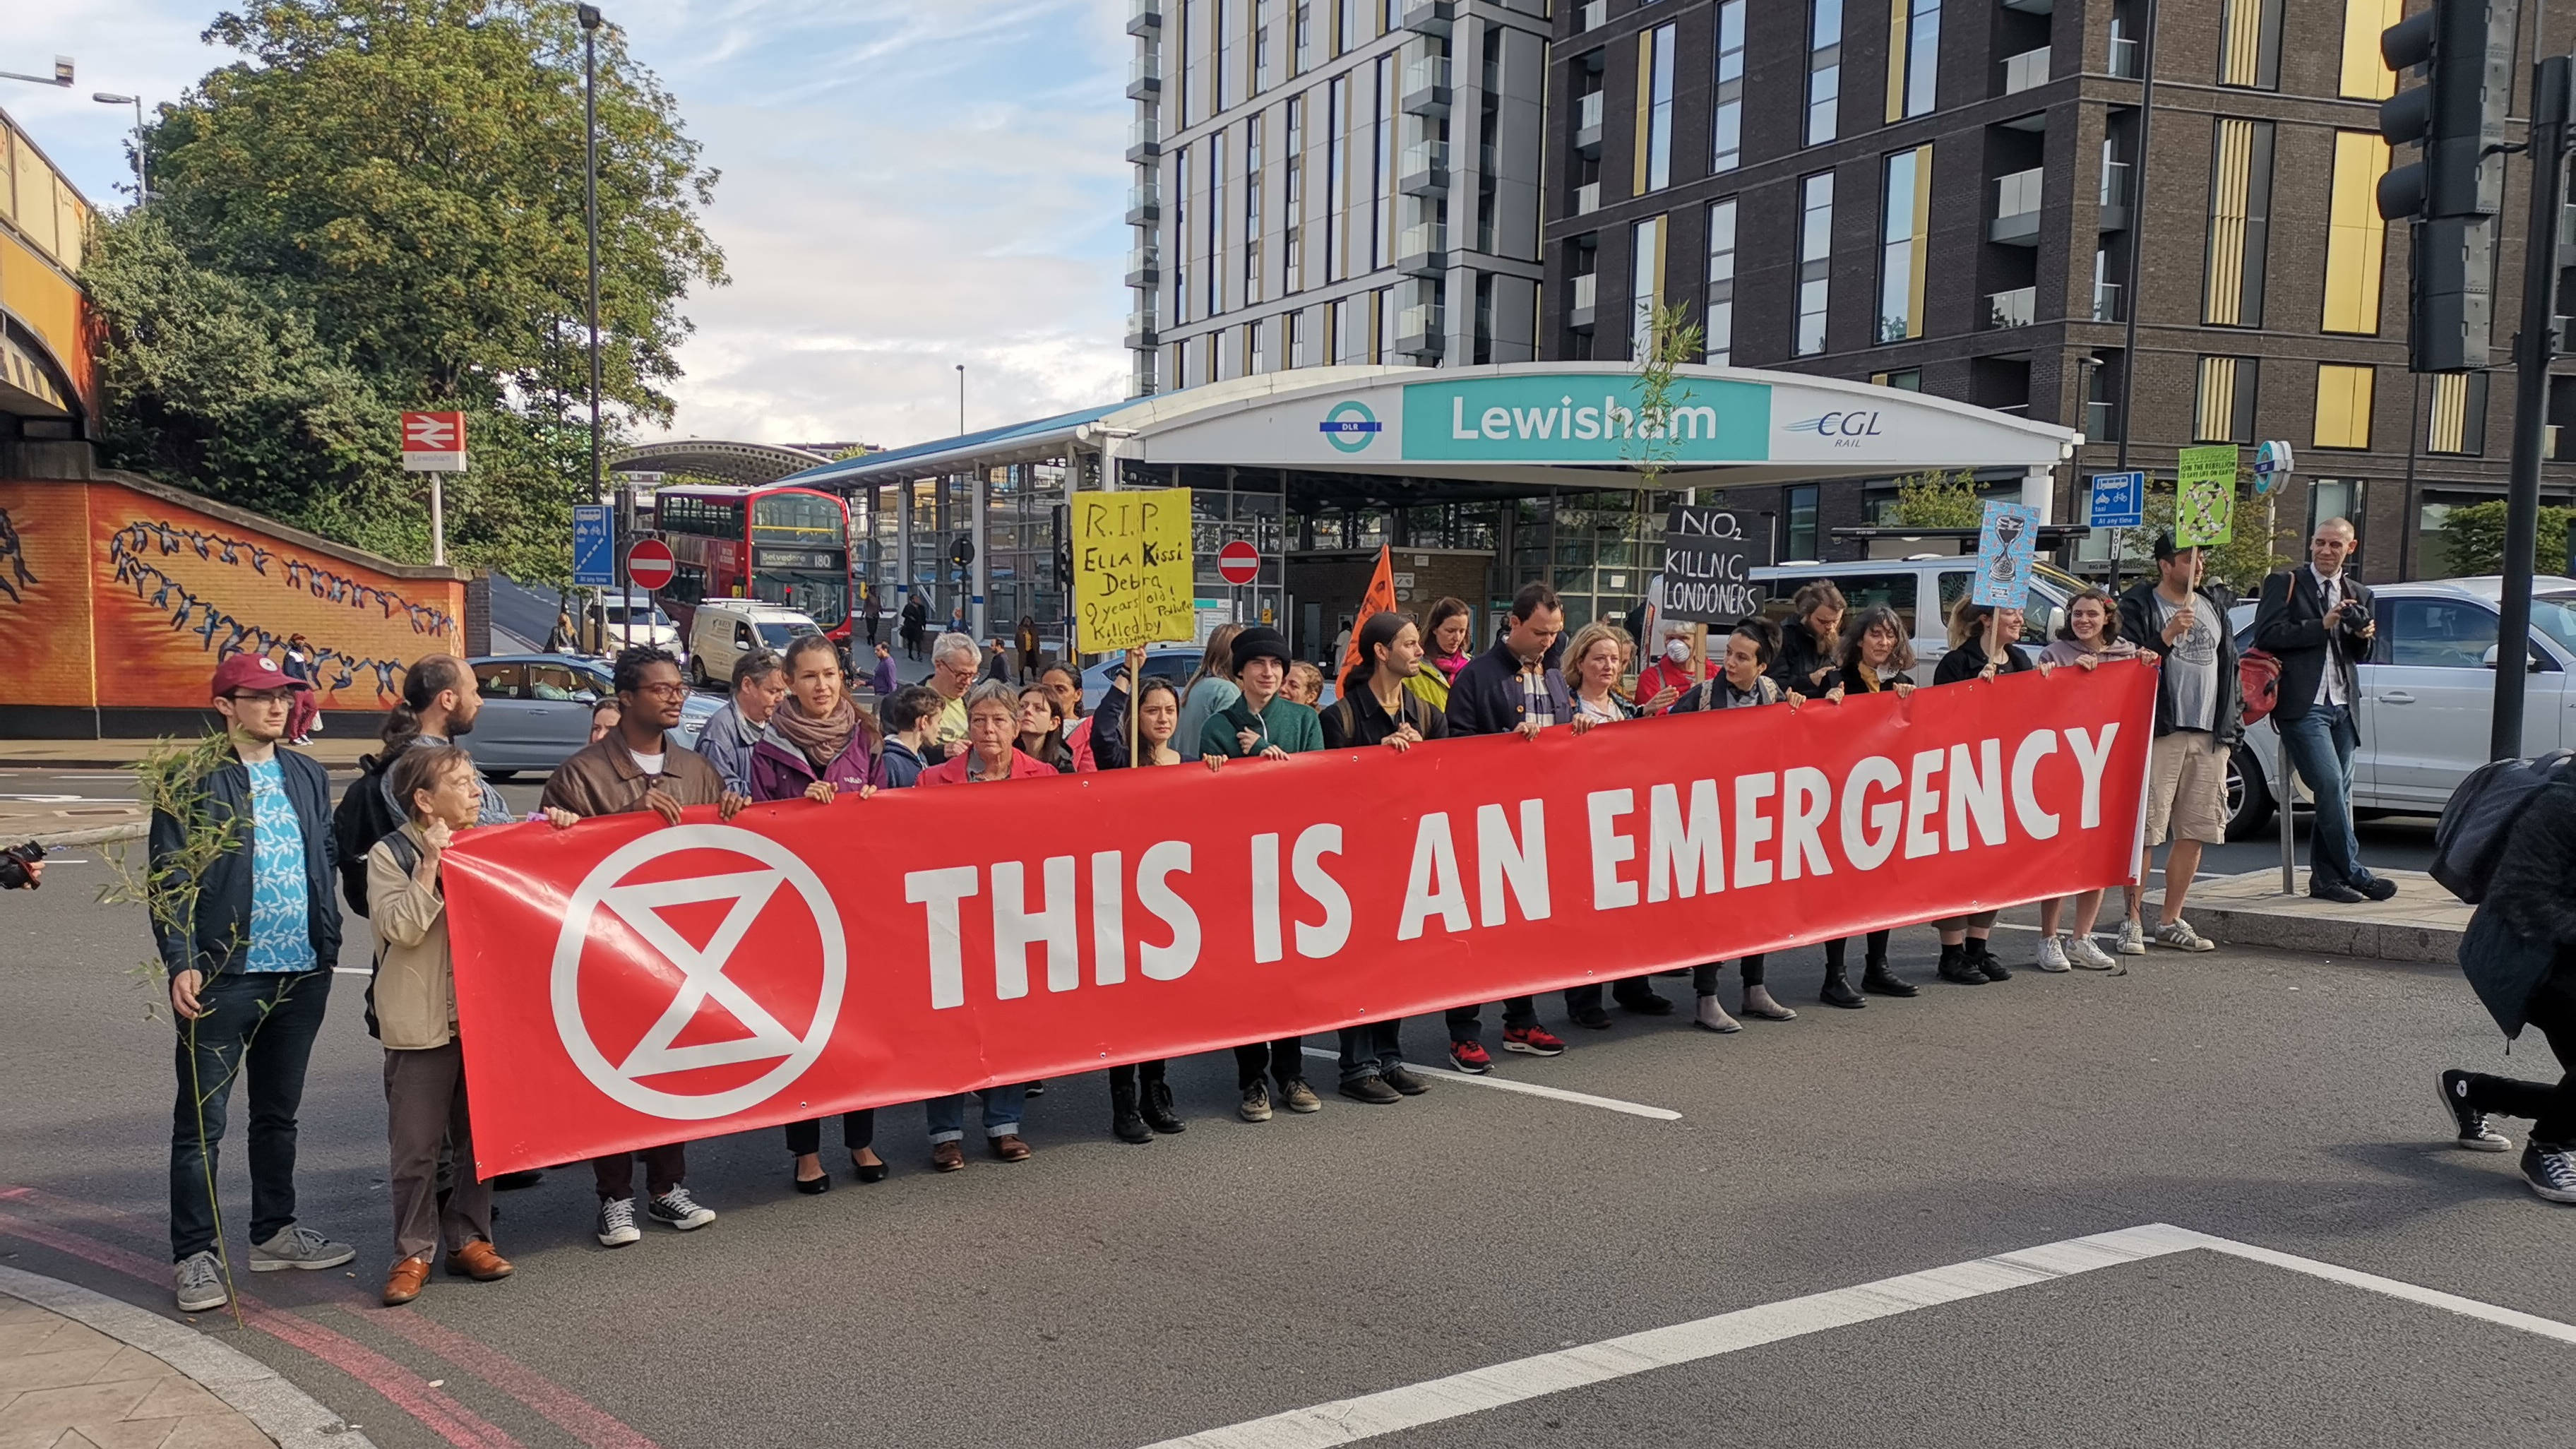 Extinction Rebellion Protests: The Five Cities Targeted By Climate Change Group Today